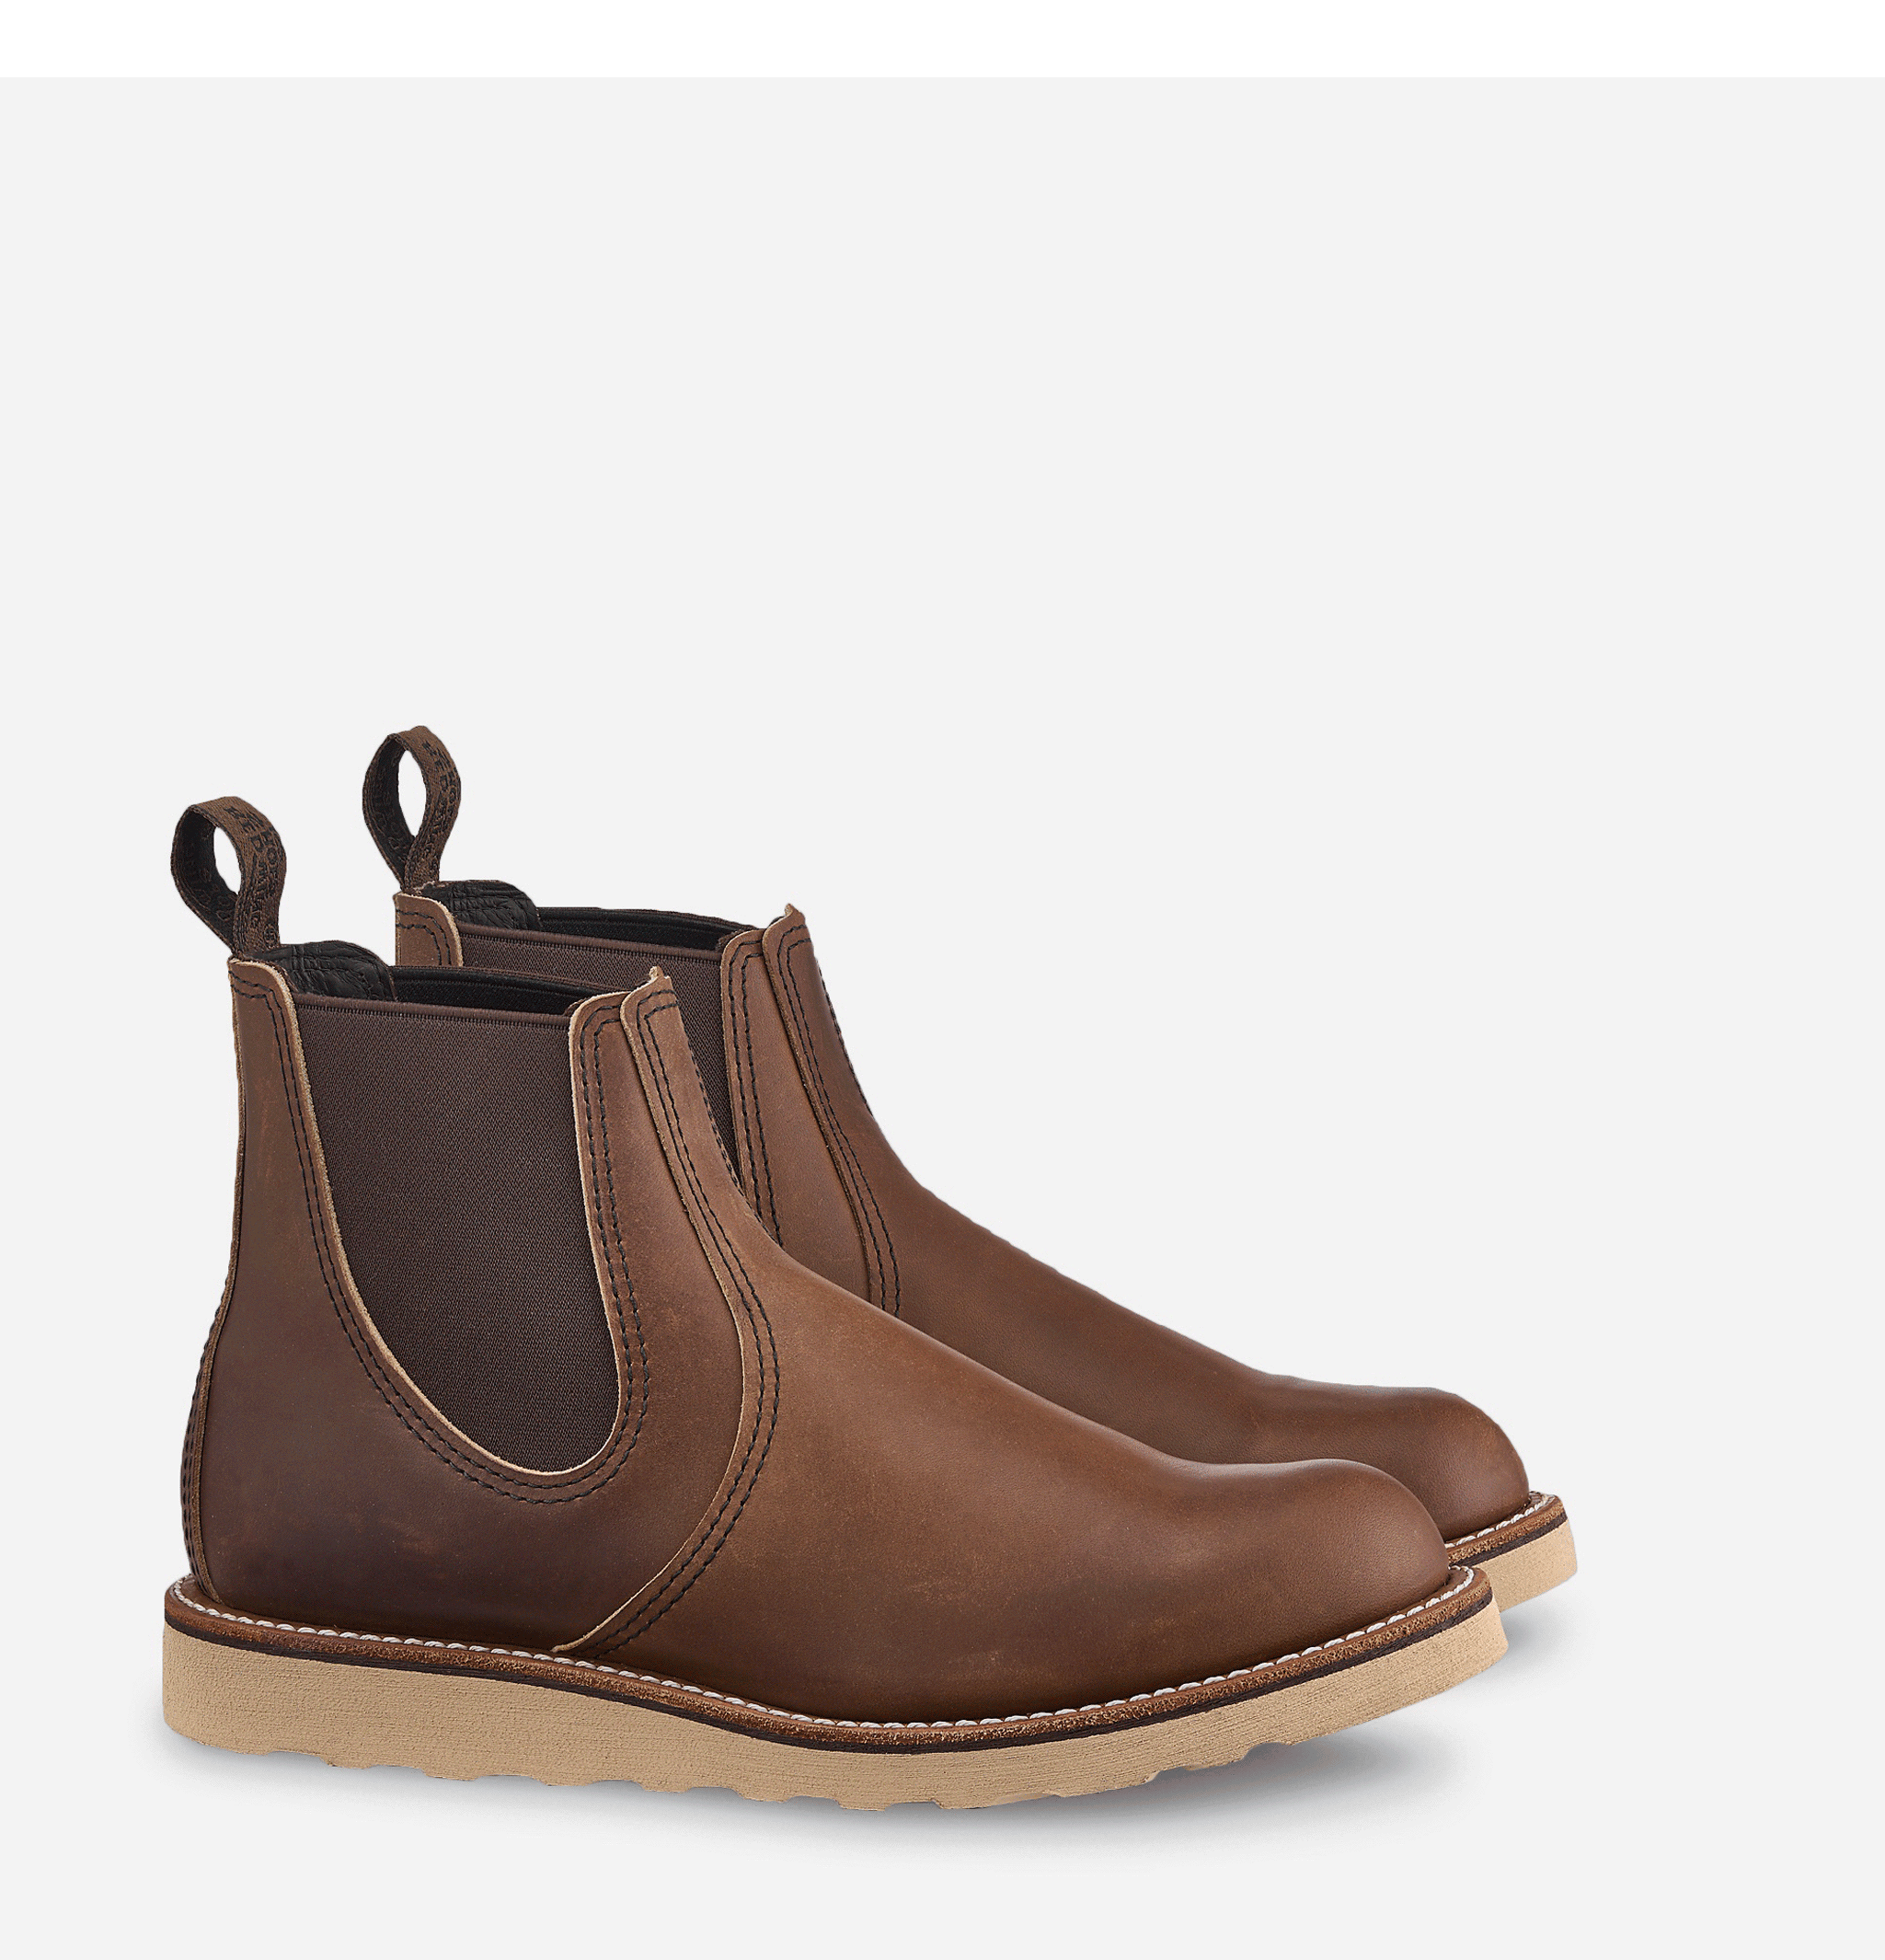 3190 - Rover Chelsea Boot...